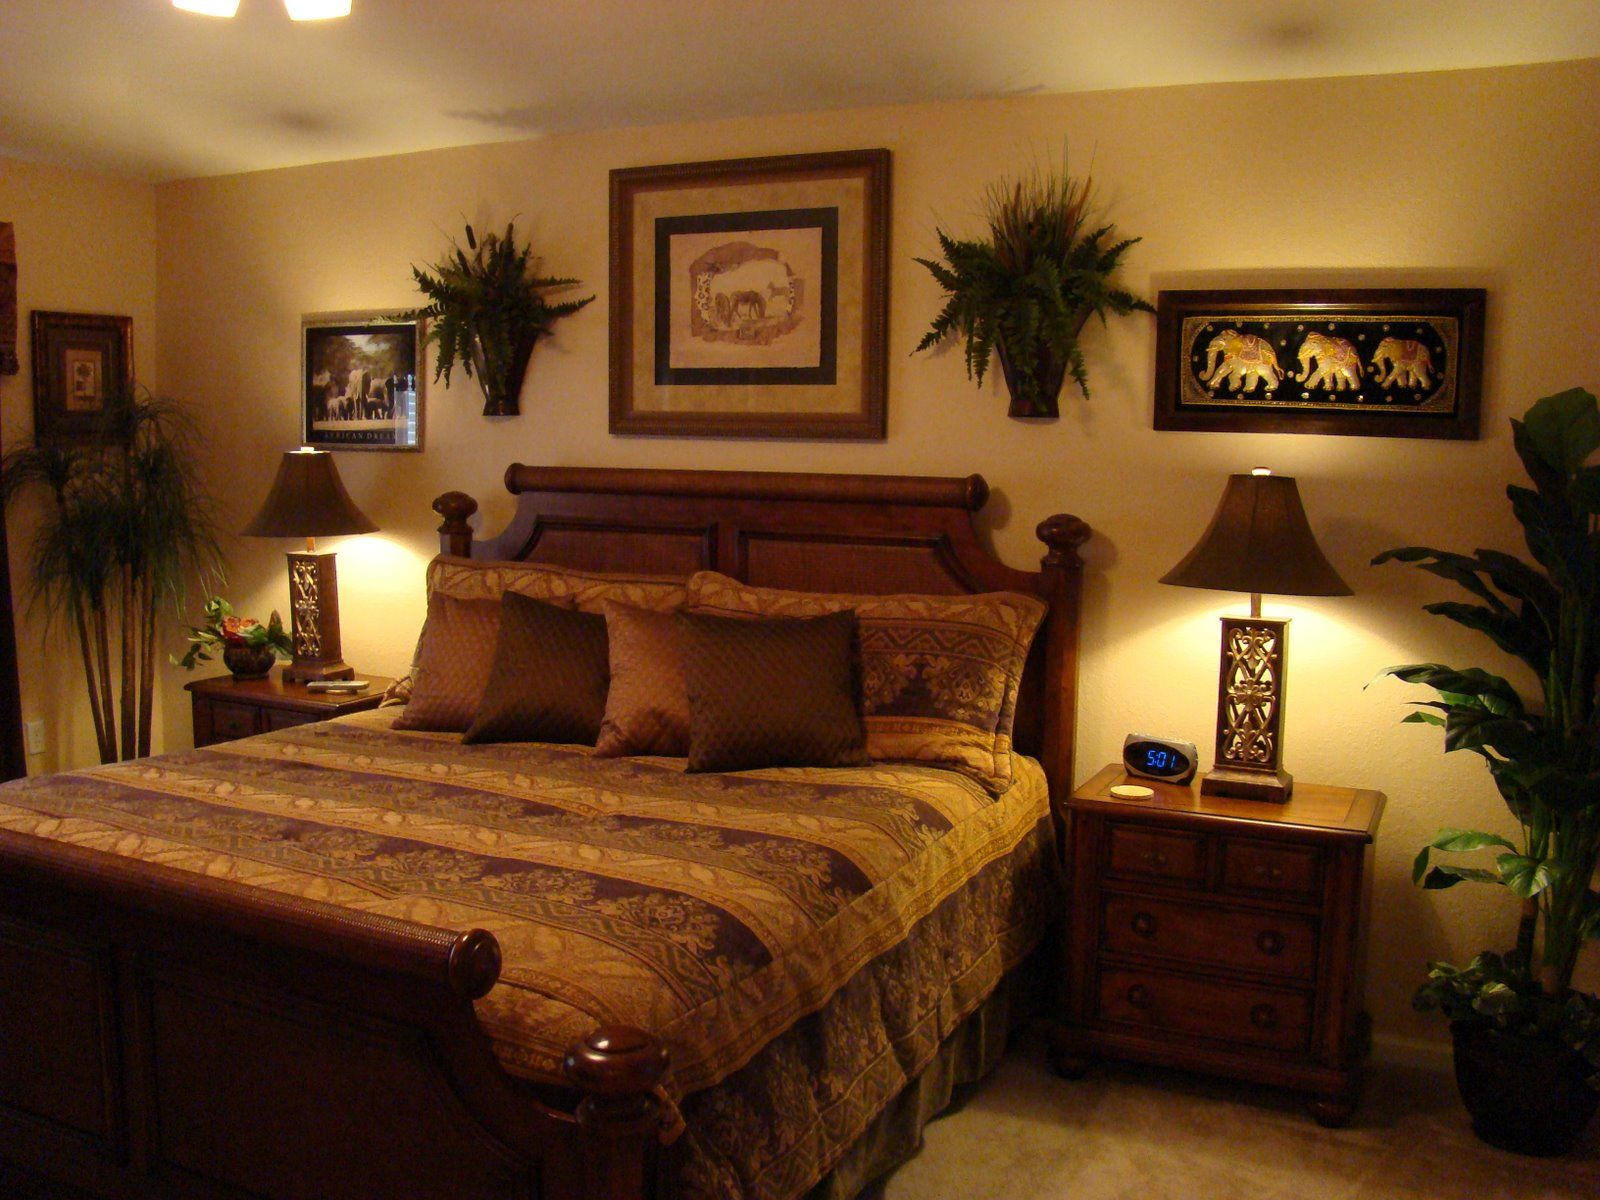 Top ten tourist attractions in kenya master bedroom for Bedroom setting ideas